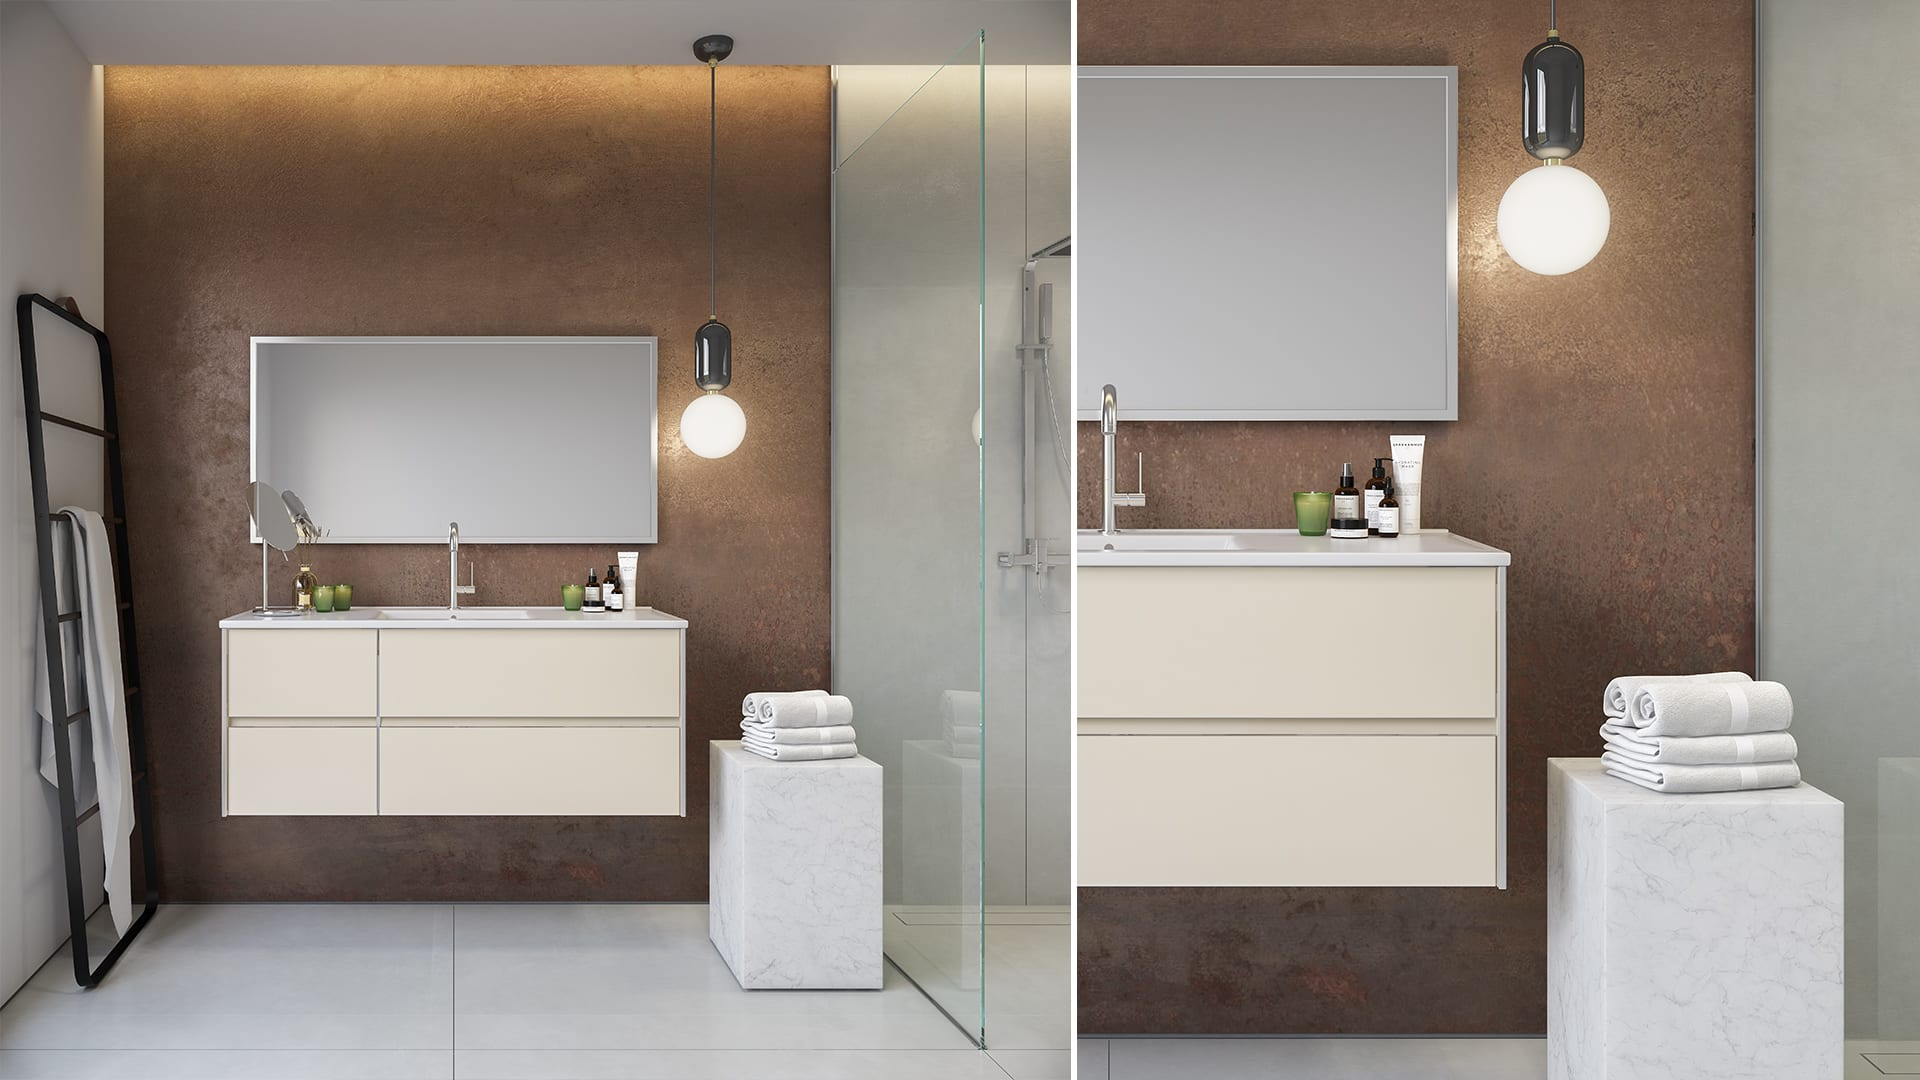 Maayan-Golan_Architectural-Visualization_product-visualization_ Bathroom-cabinets_ company-Ambin-Systems_07